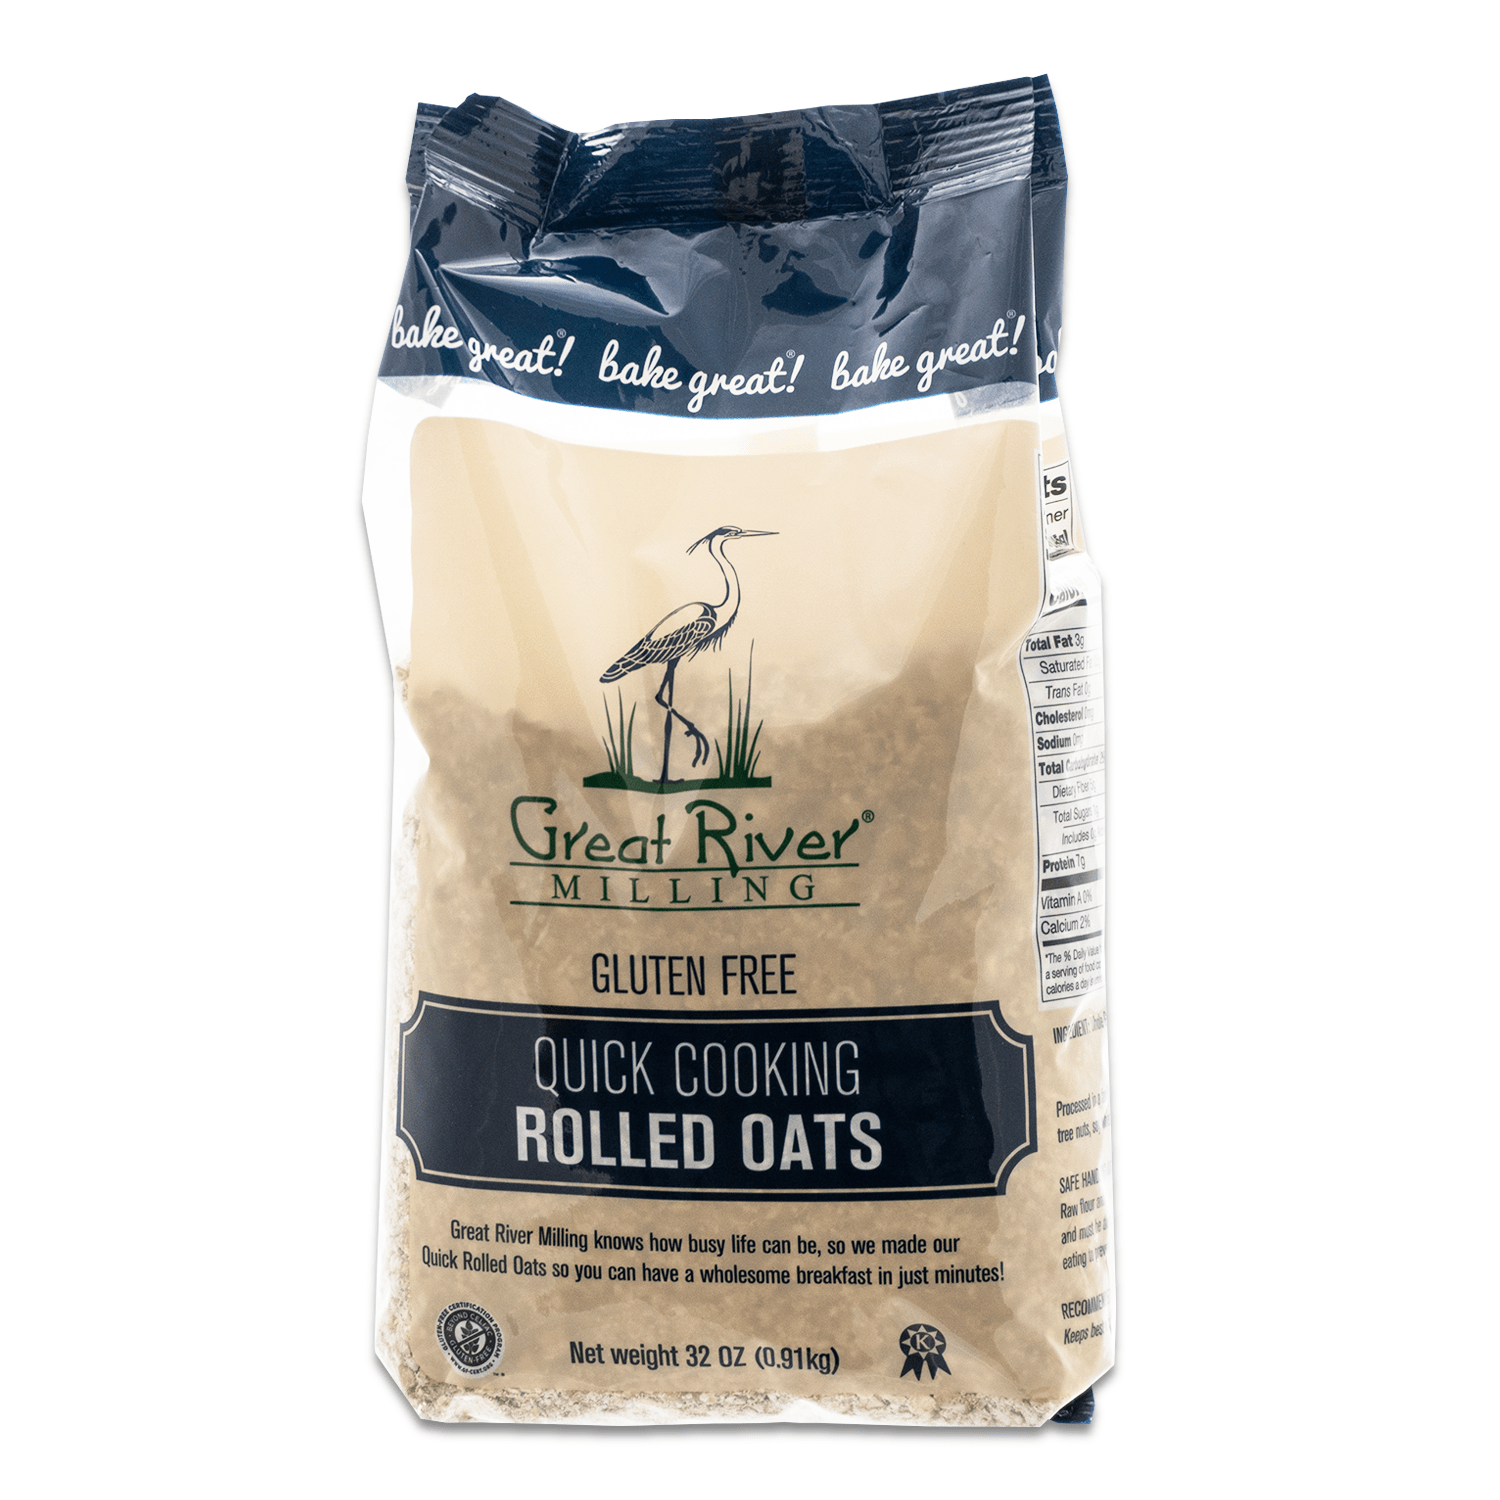 gluten_free_quick_cooking_rolled_oats_32oz